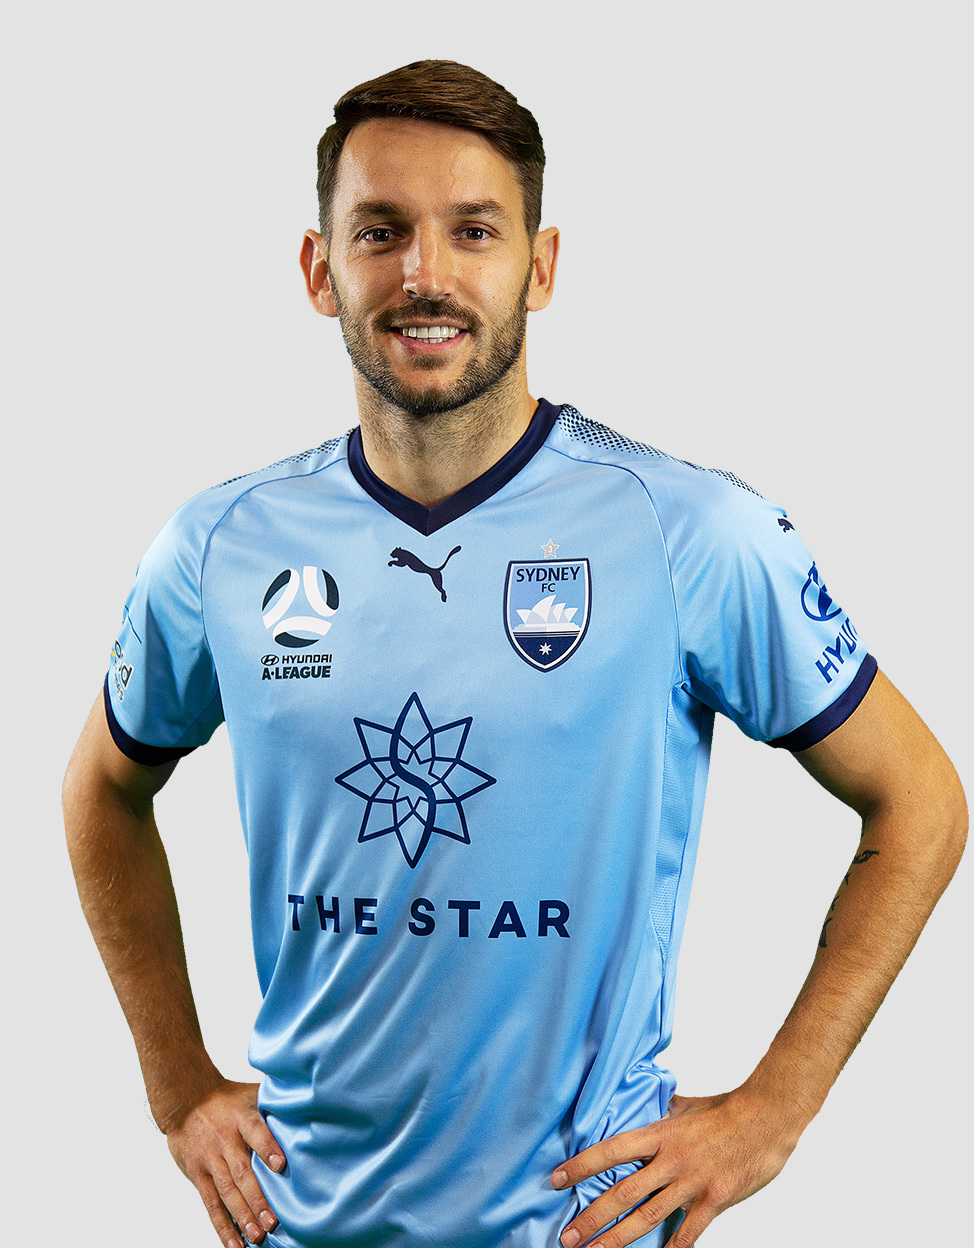 Sydney FC 18-19 Home, Away & Third Kit Released - Footy ...